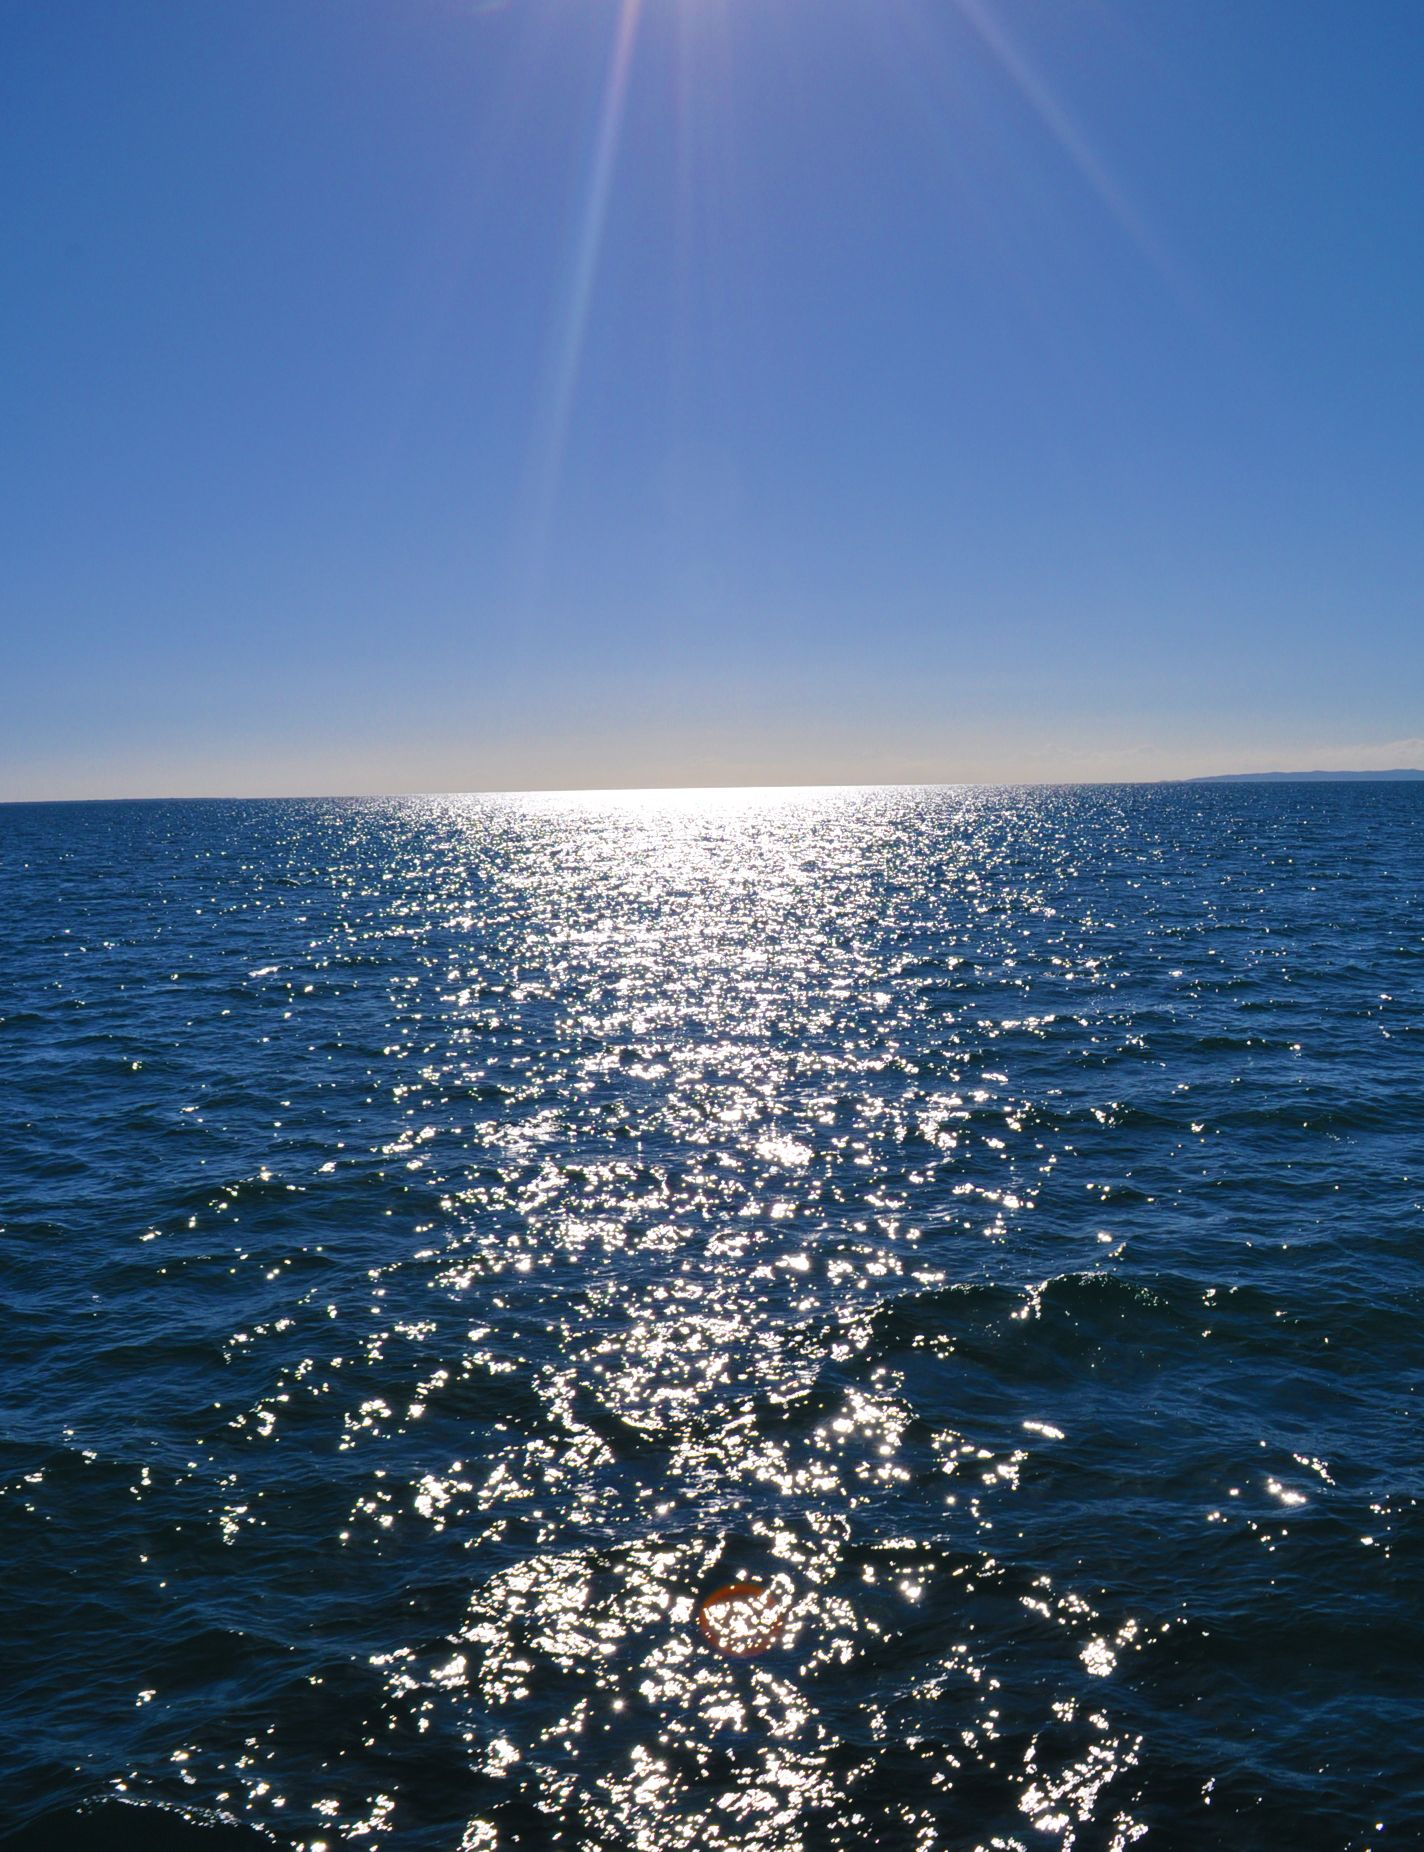 The sun shining on the crystal blue water off Moreton Island. You could see this for yourself on your next cruise - PO have added Moreton Island as a new port!